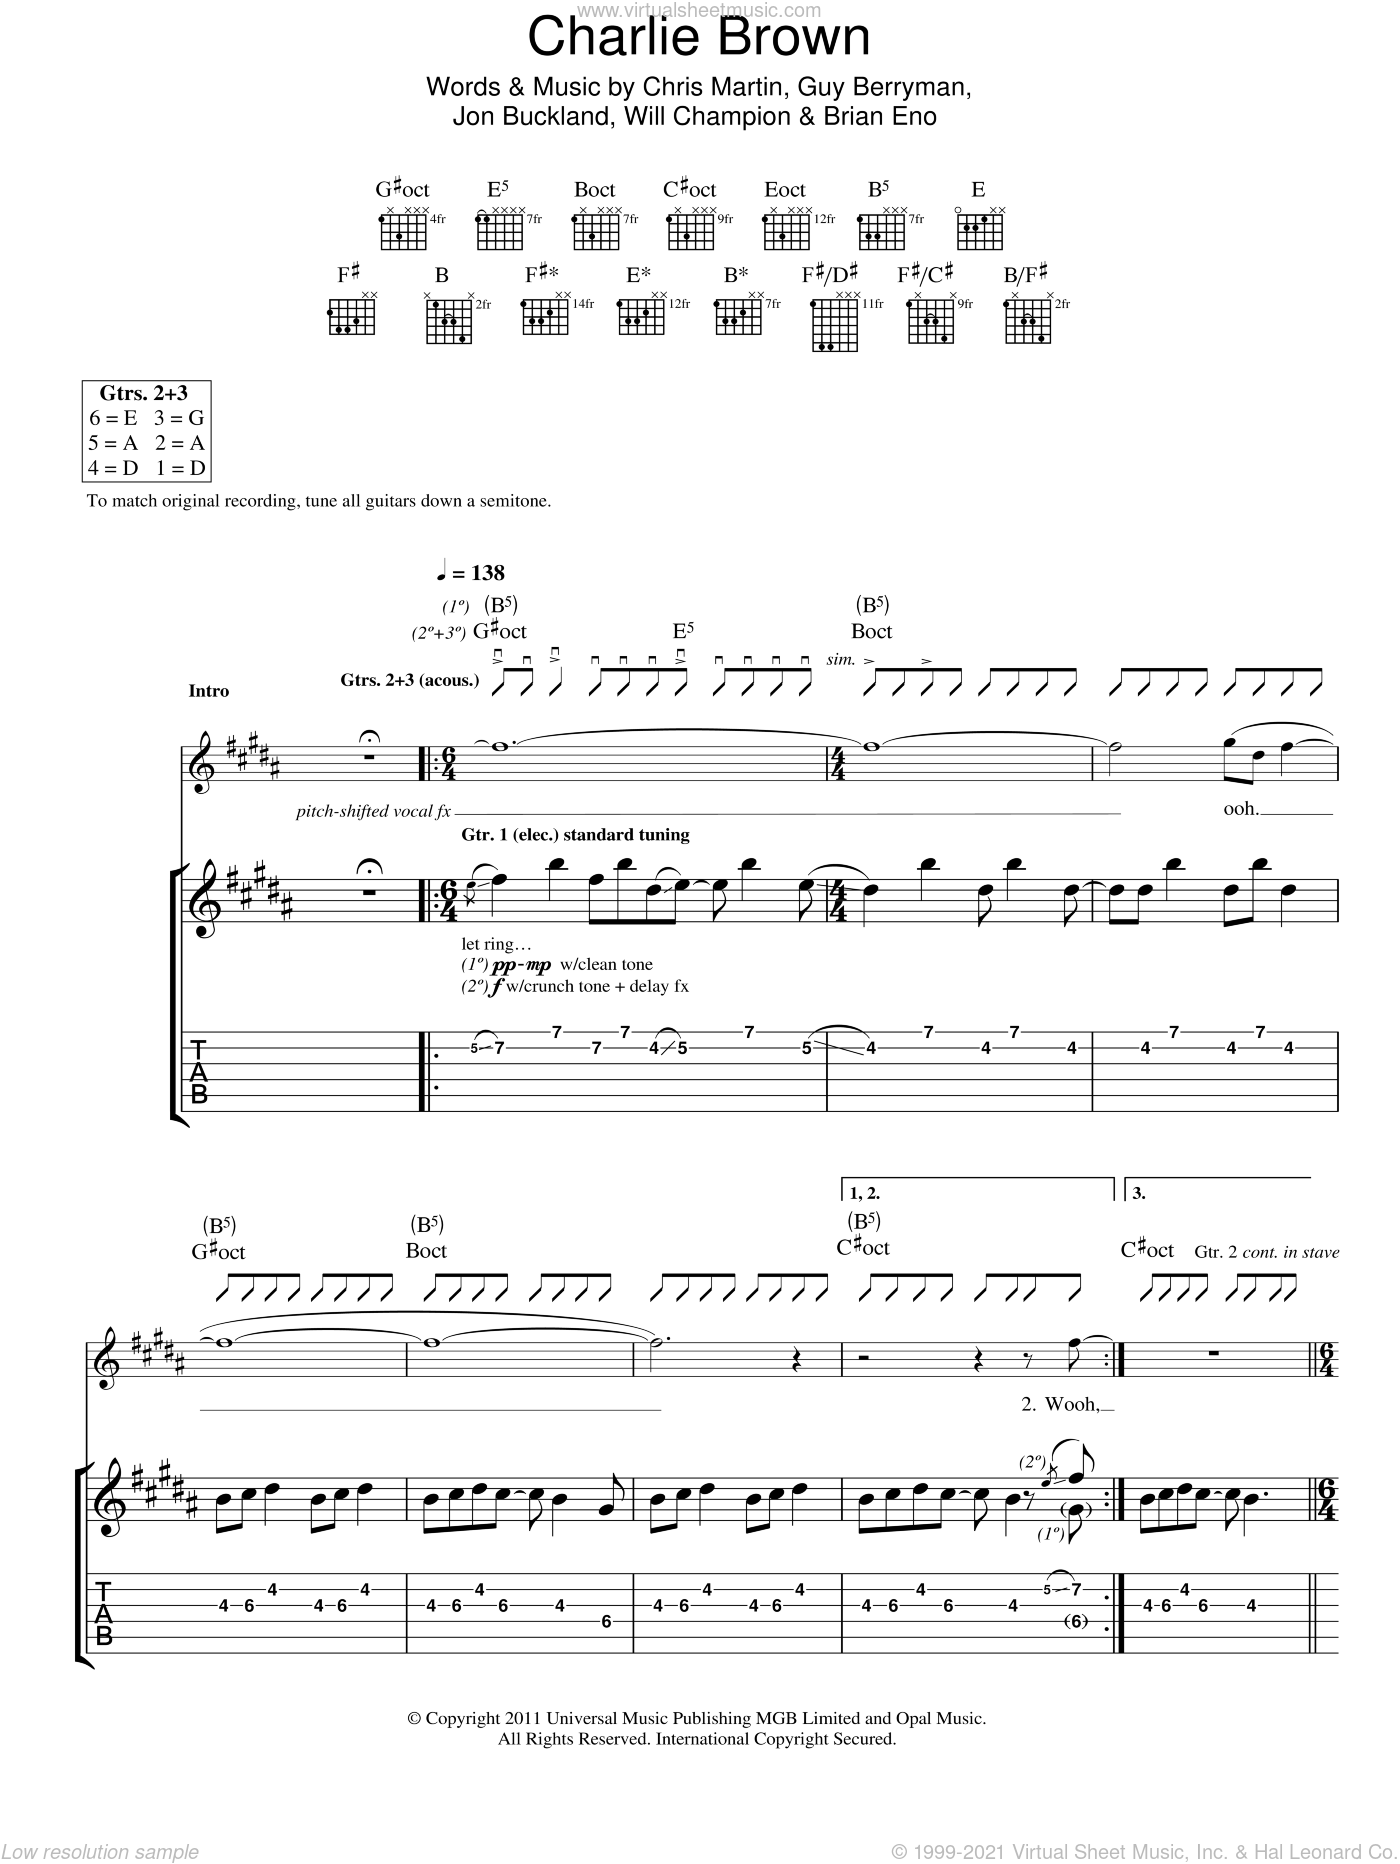 Charlie Brown sheet music for guitar (tablature) by Will Champion, Coldplay, Brian Eno, Chris Martin, Guy Berryman and Jon Buckland. Score Image Preview.